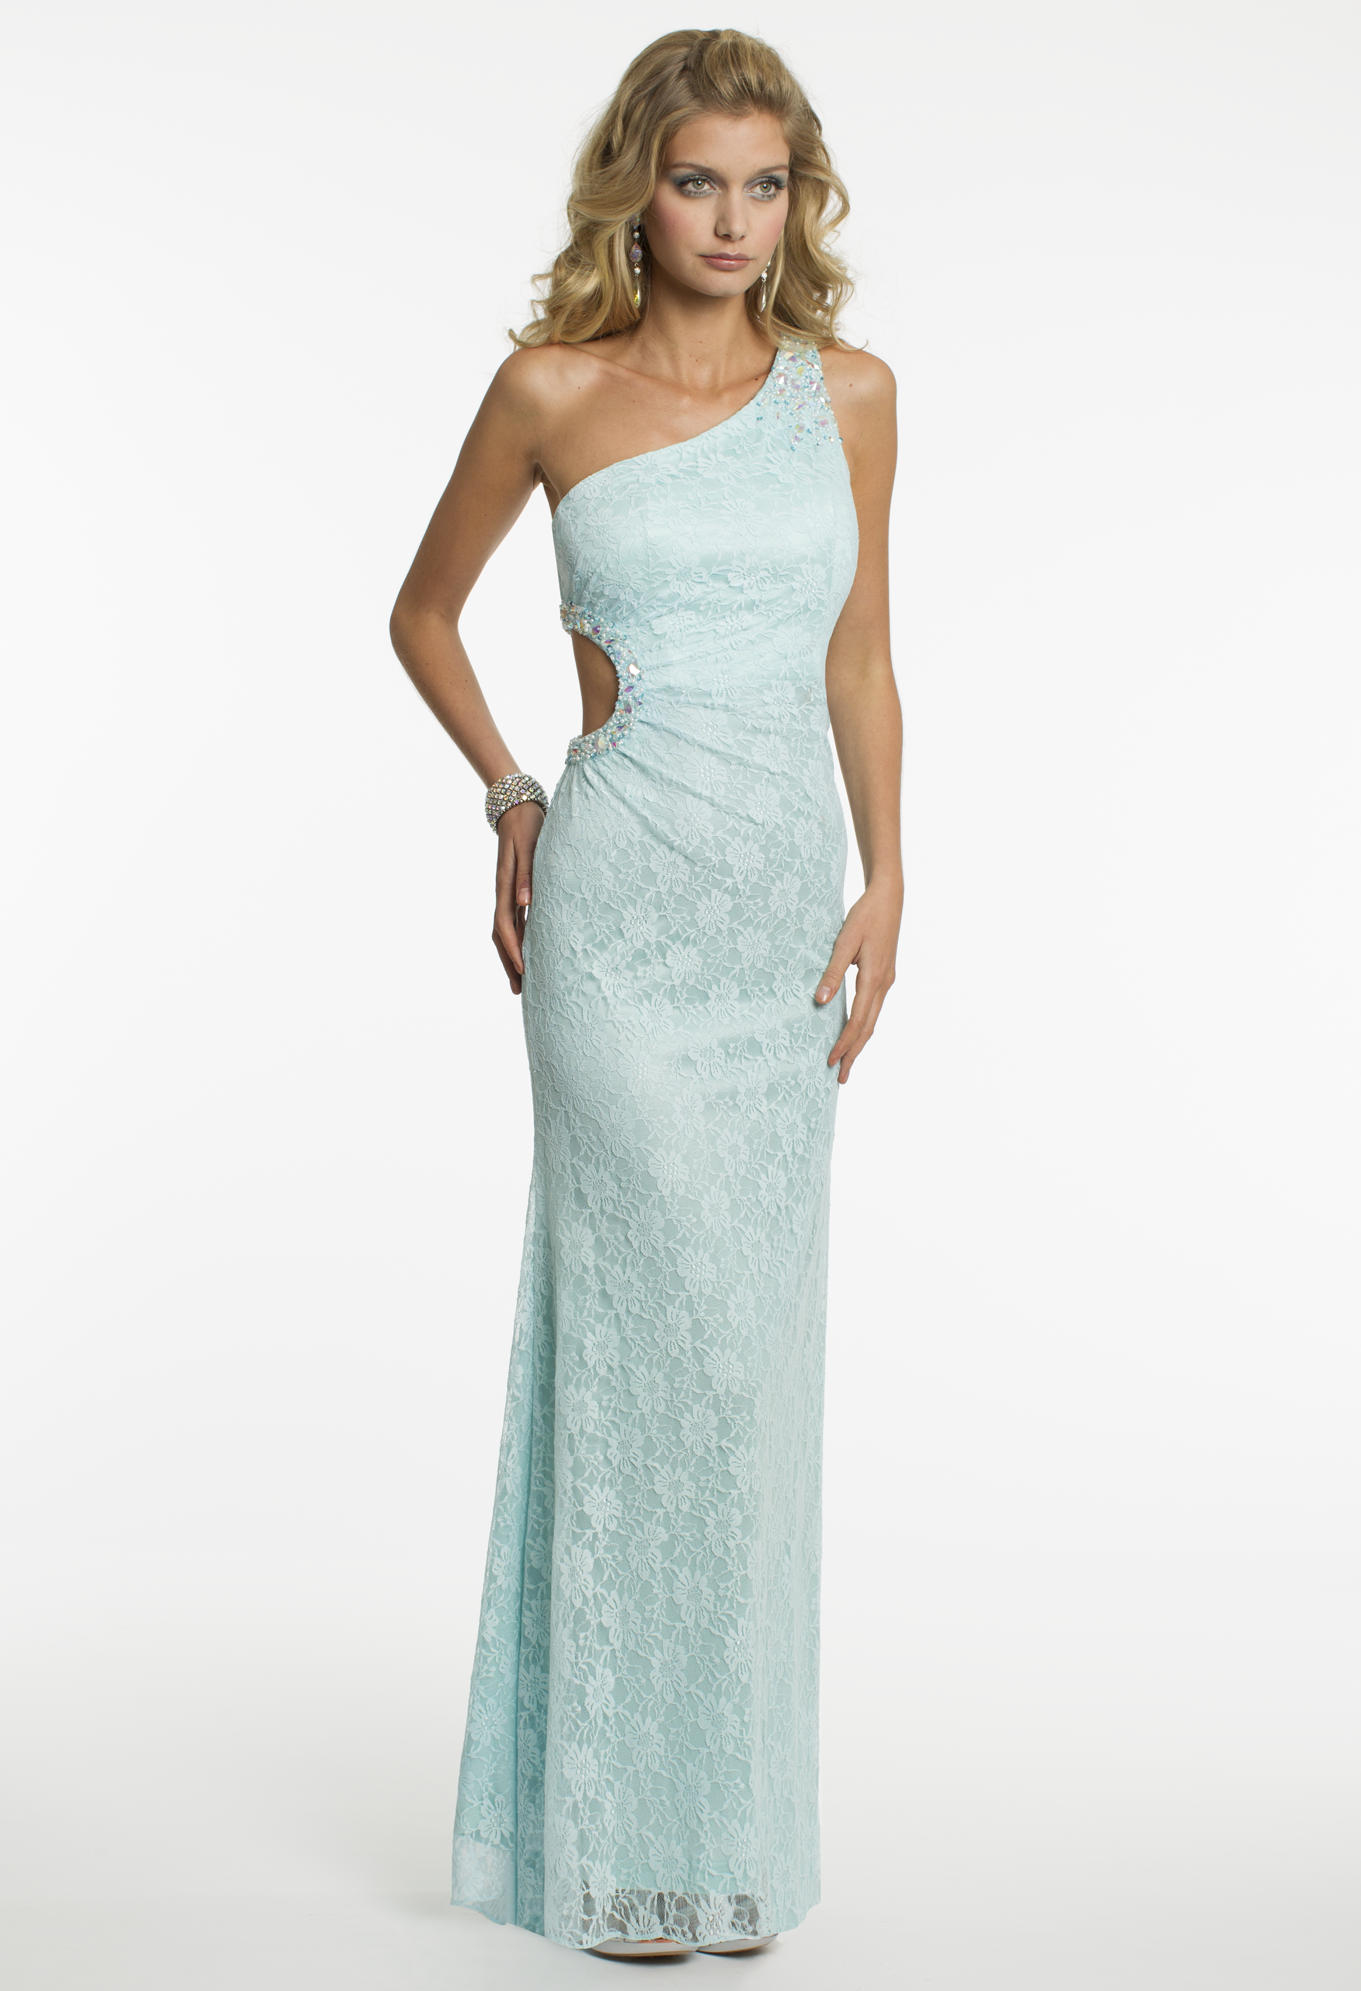 Green dress one shoulder  Camille La Vie One Shoulder Lace Prom Dress with Side Cut Out  LACE